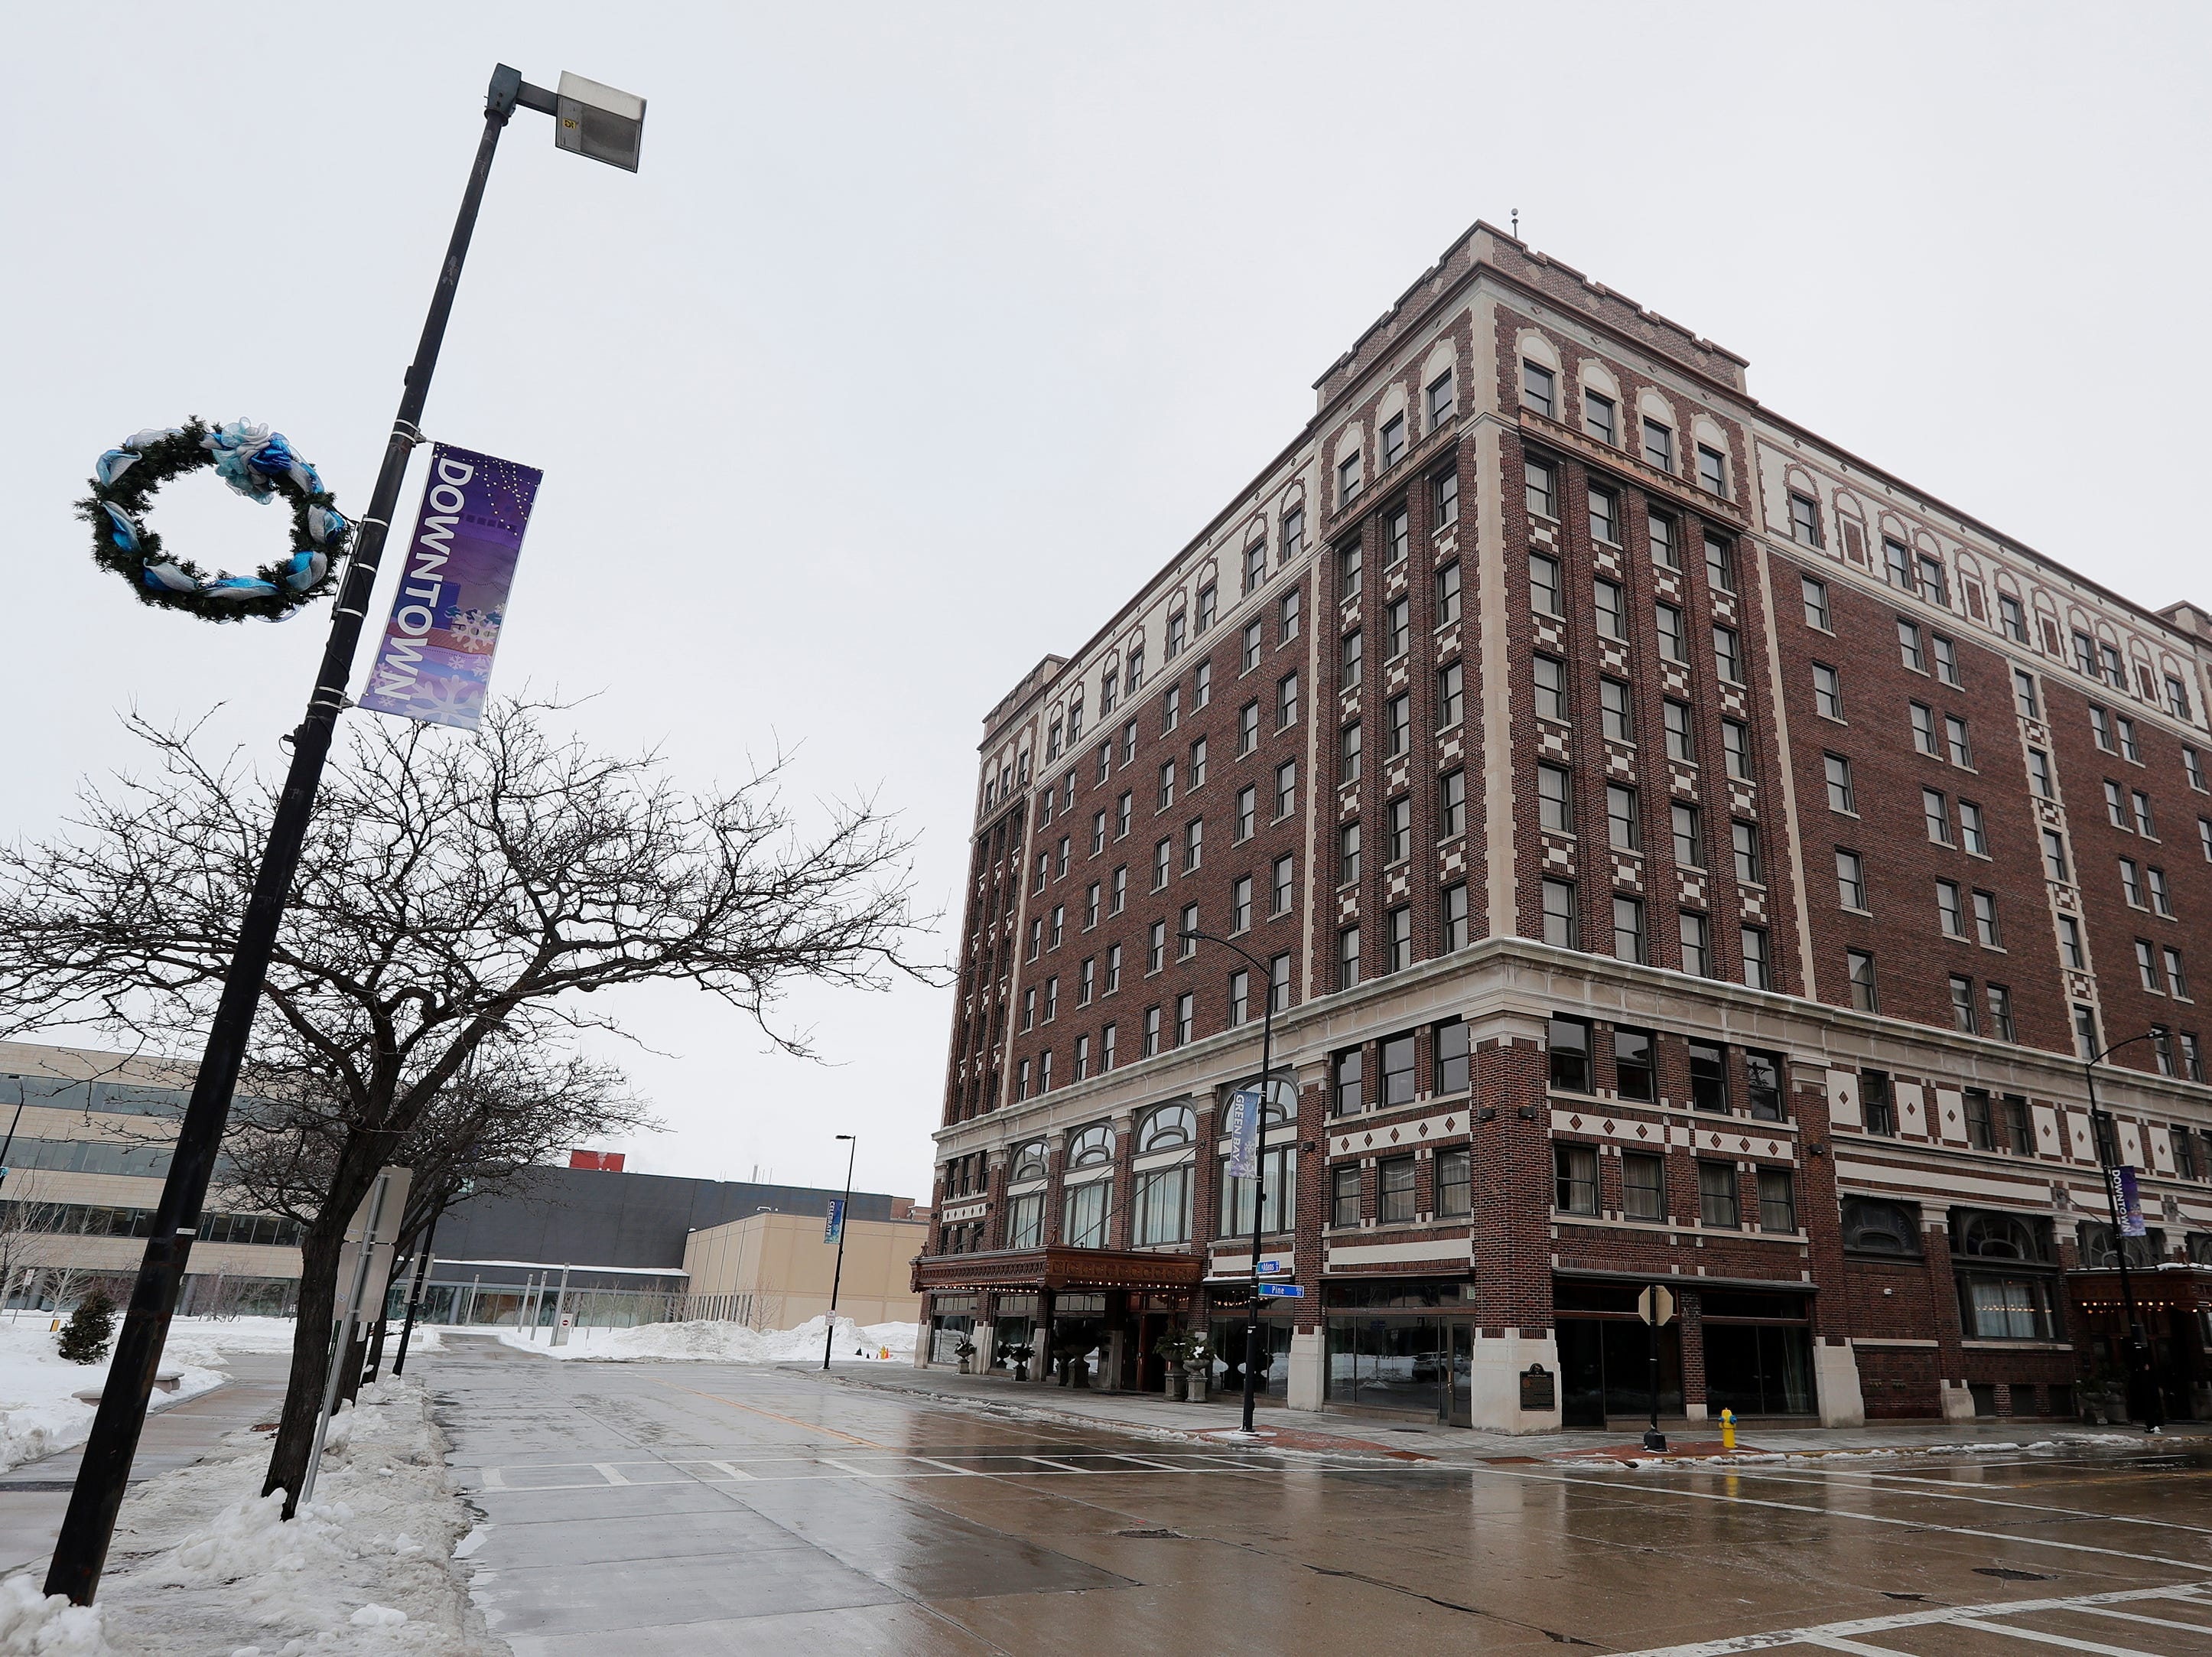 The Hotel Northland is shown on Thursday, February 14, 2019 in Green Bay, Wis.